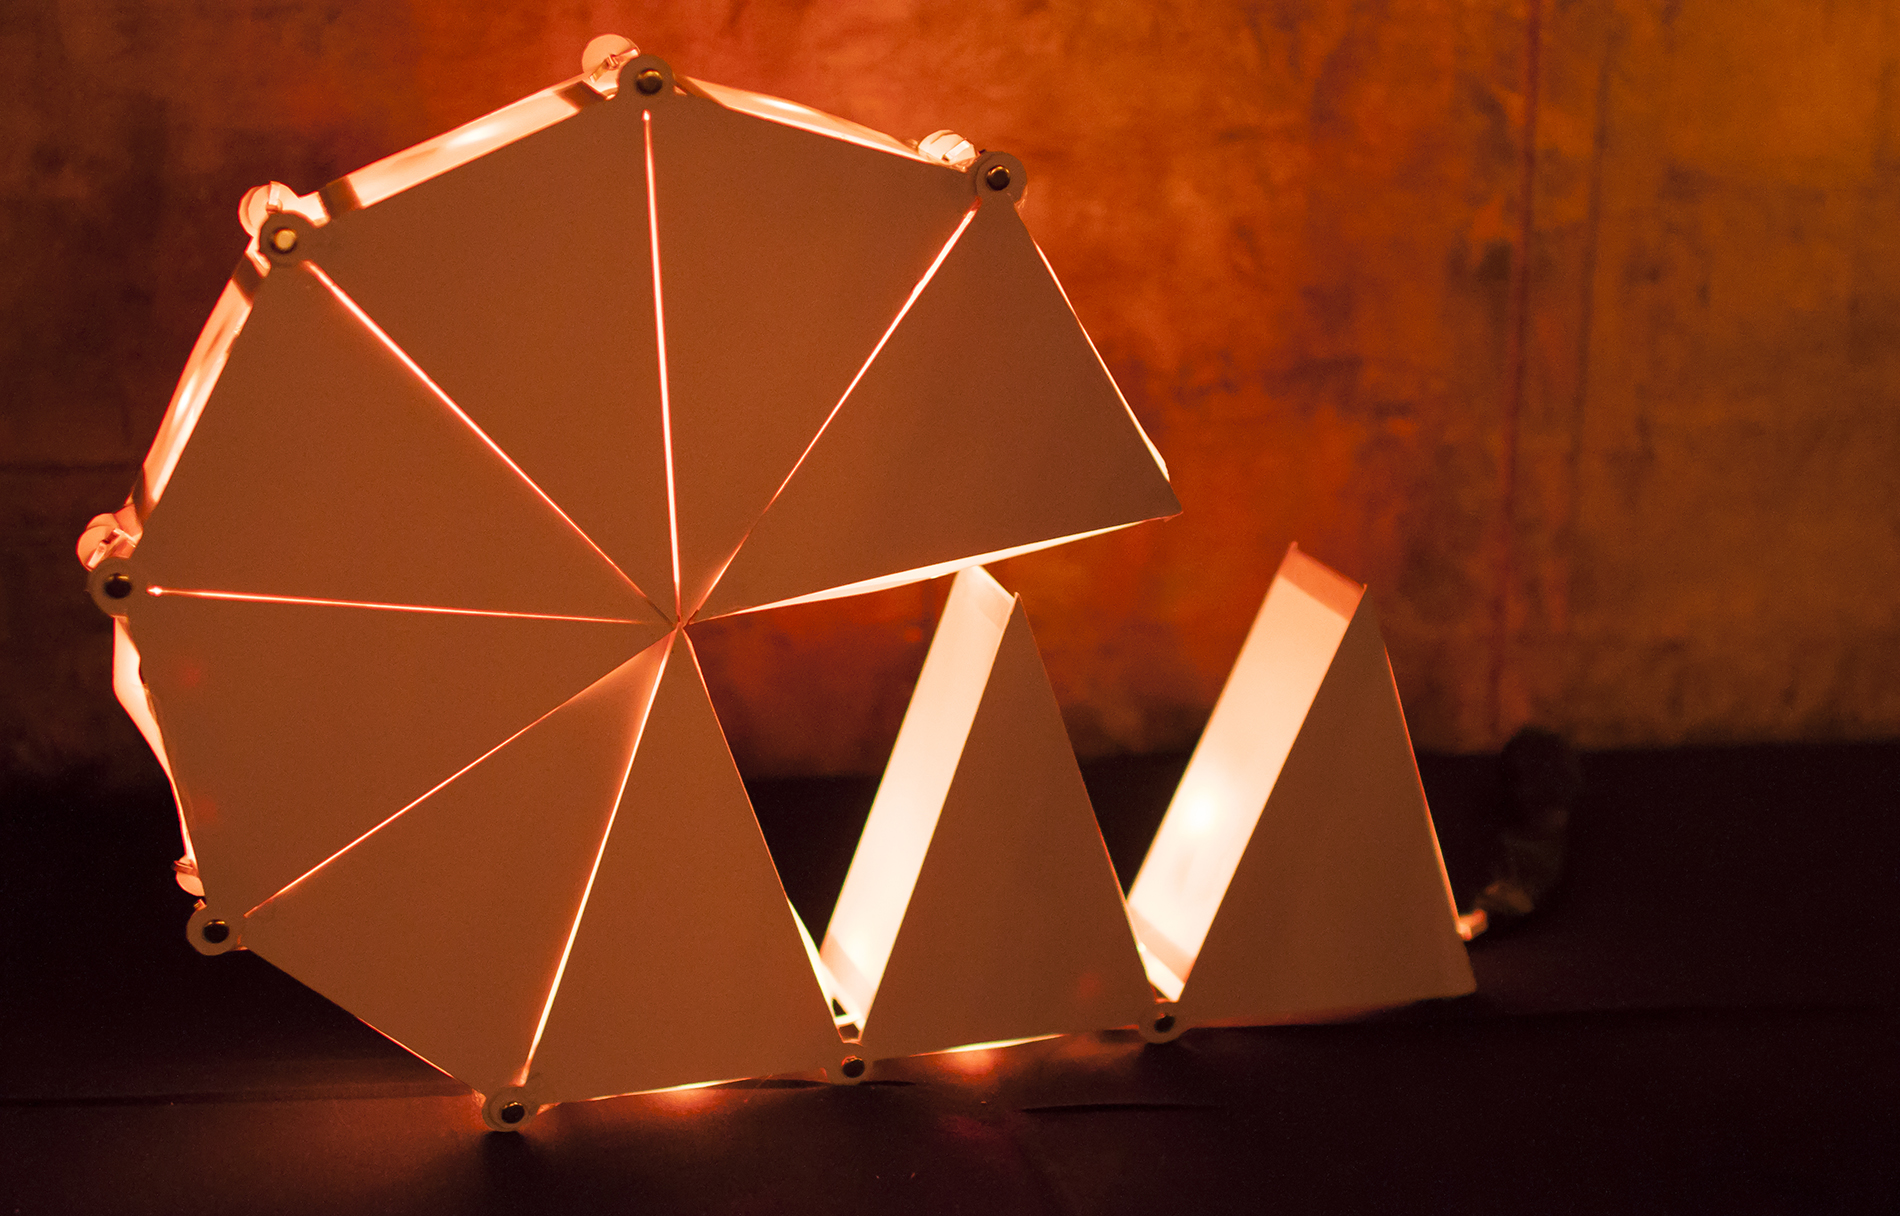 Jennifer Place's winning luminaire design